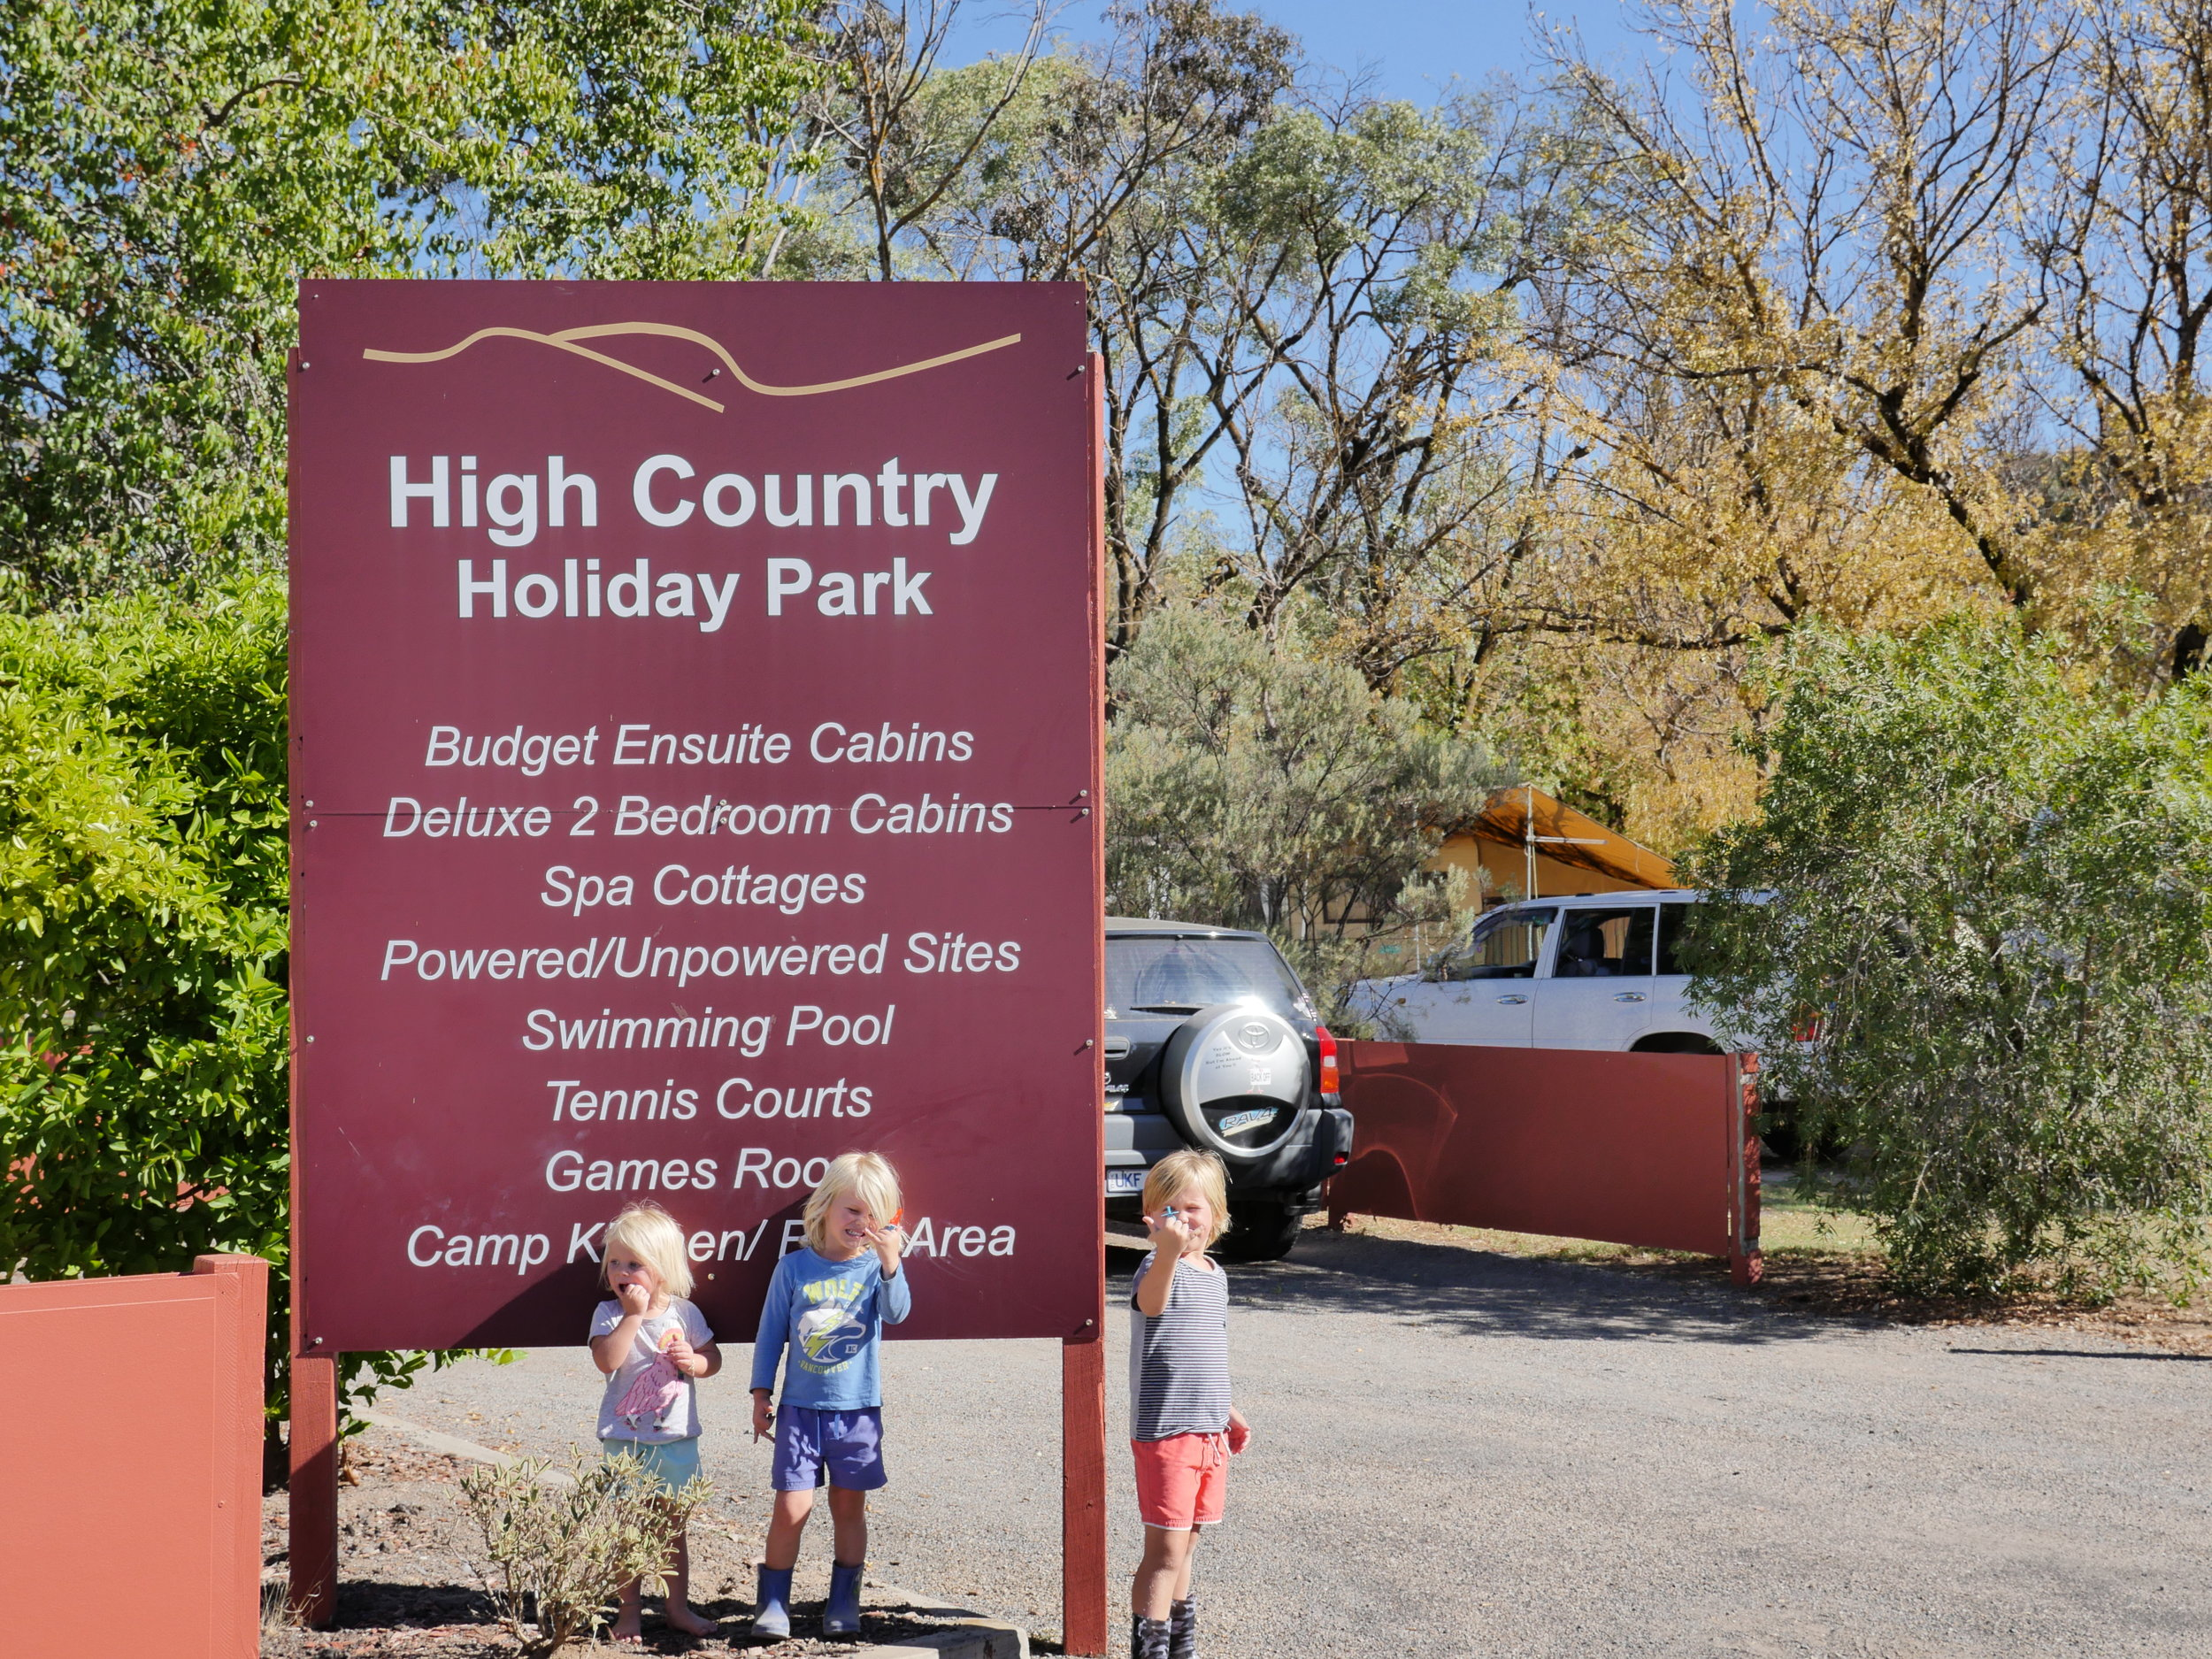 HIGH COUNTRY HOLIDAY PARK  - A TOP SPOT TO START YOUR HIGH COUNTRY ADVENTURE!